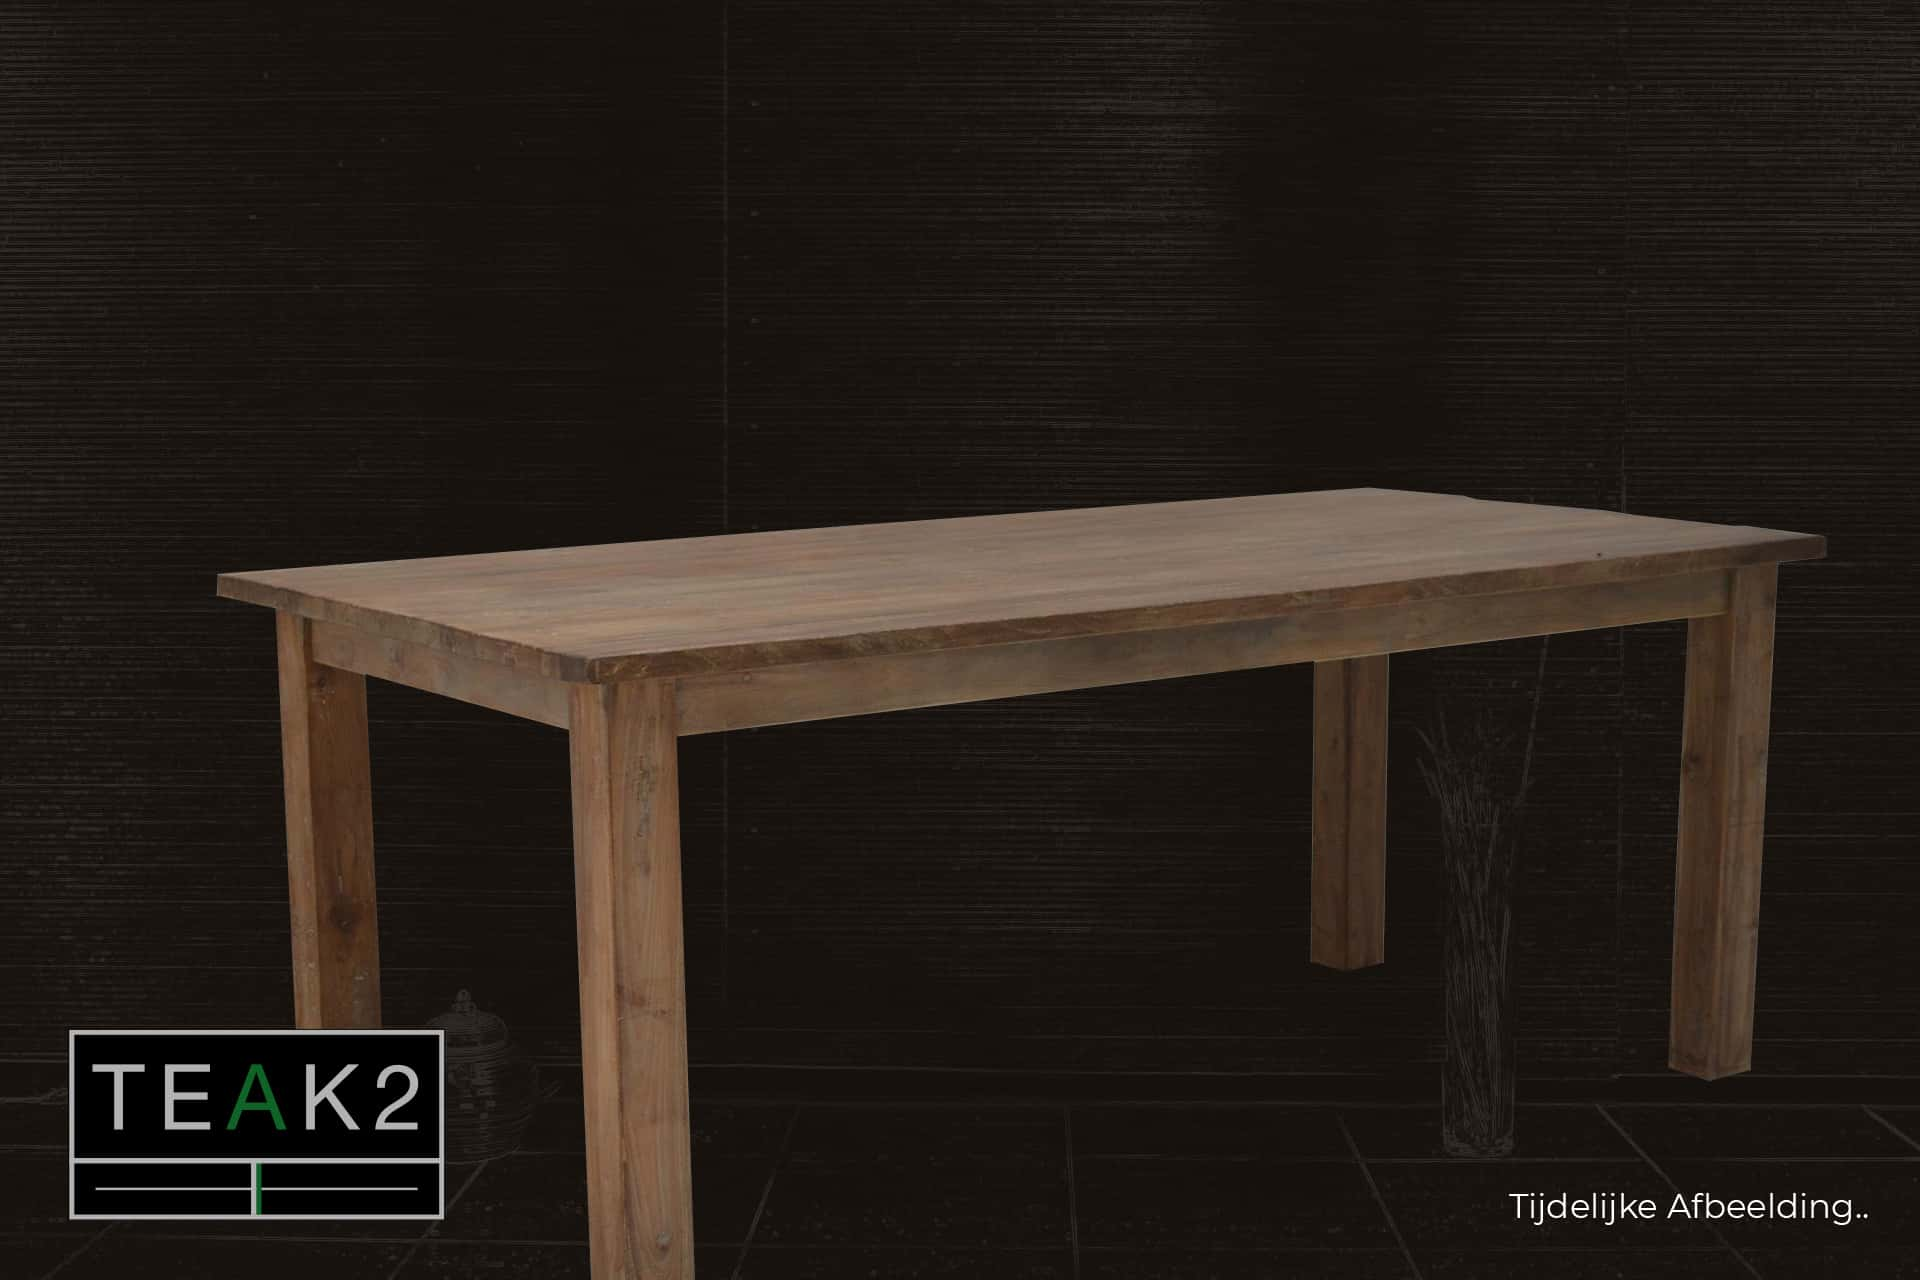 Teak Lugas T220L Old | rustic table in old teak. Teak dining table without header and beautiful structure. Quality from Indonesia - TEAK2.